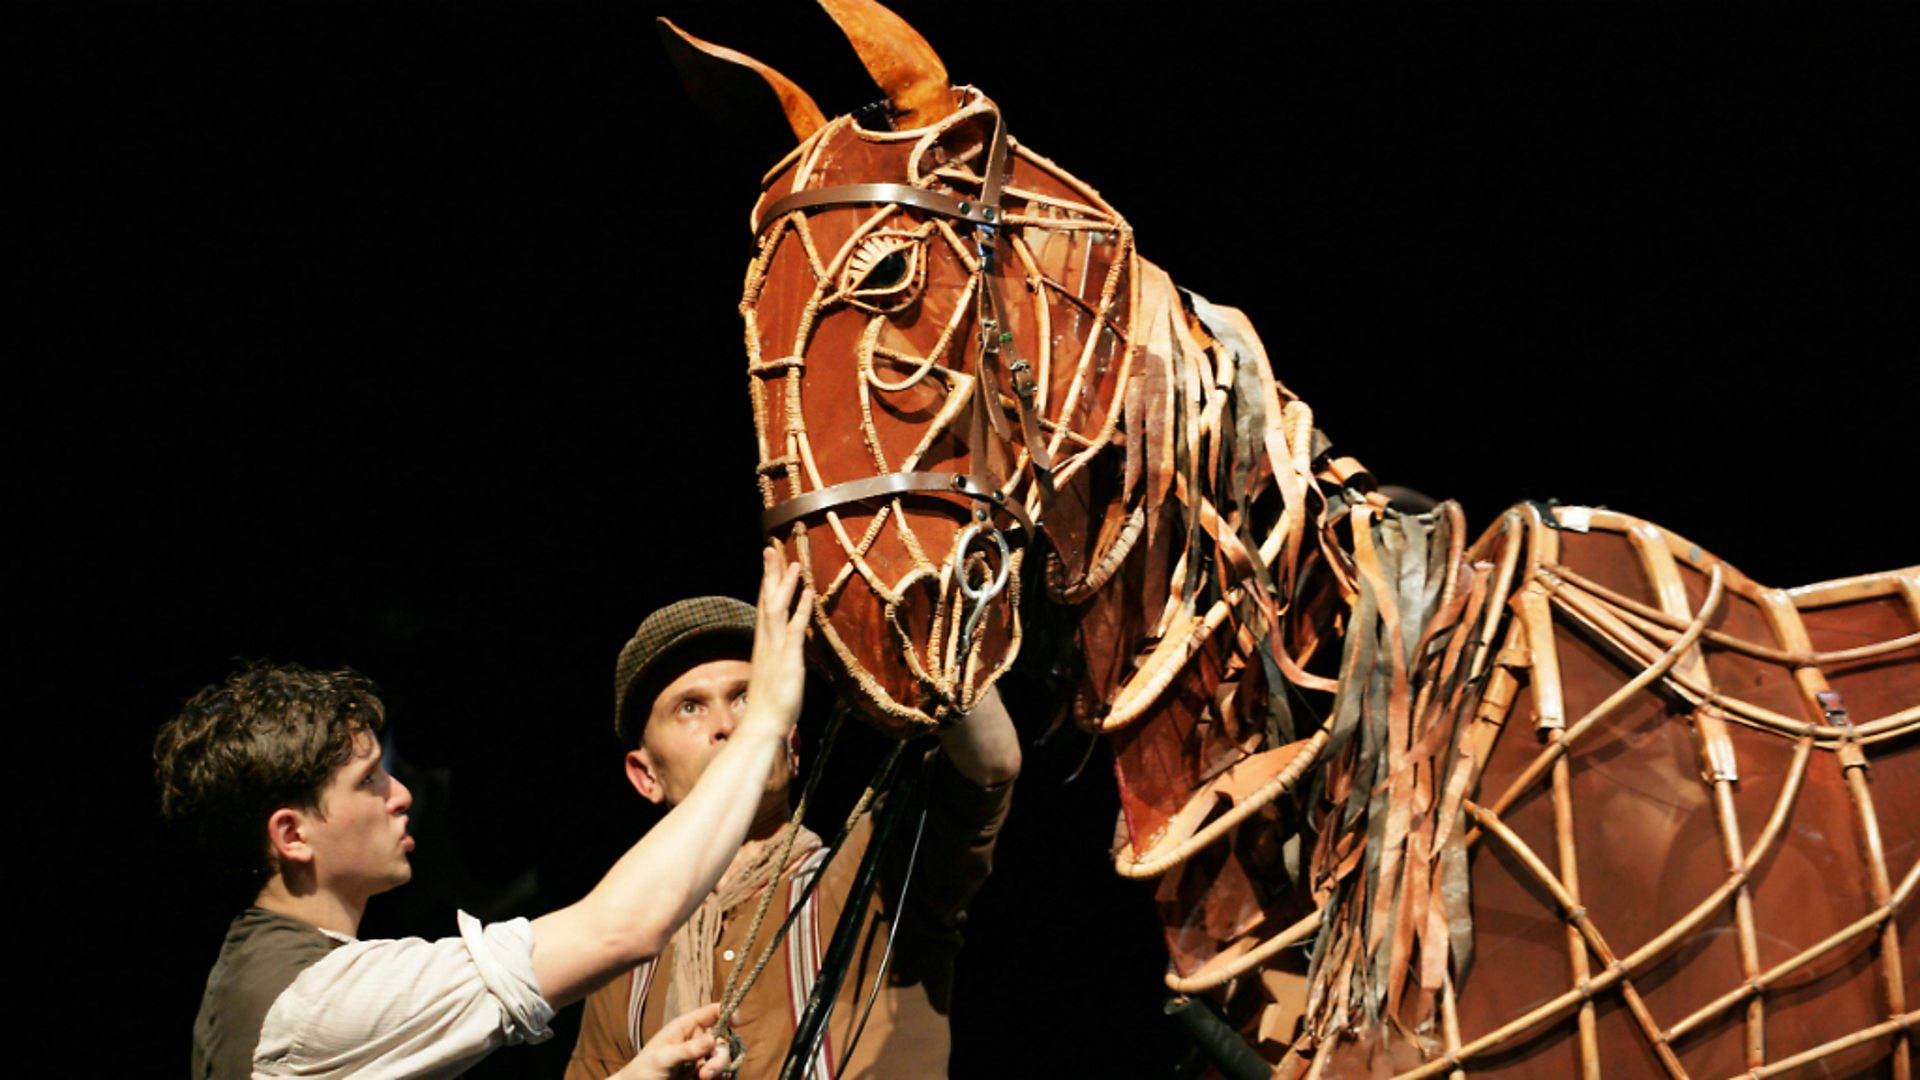 Photo from the War Horse theatre production